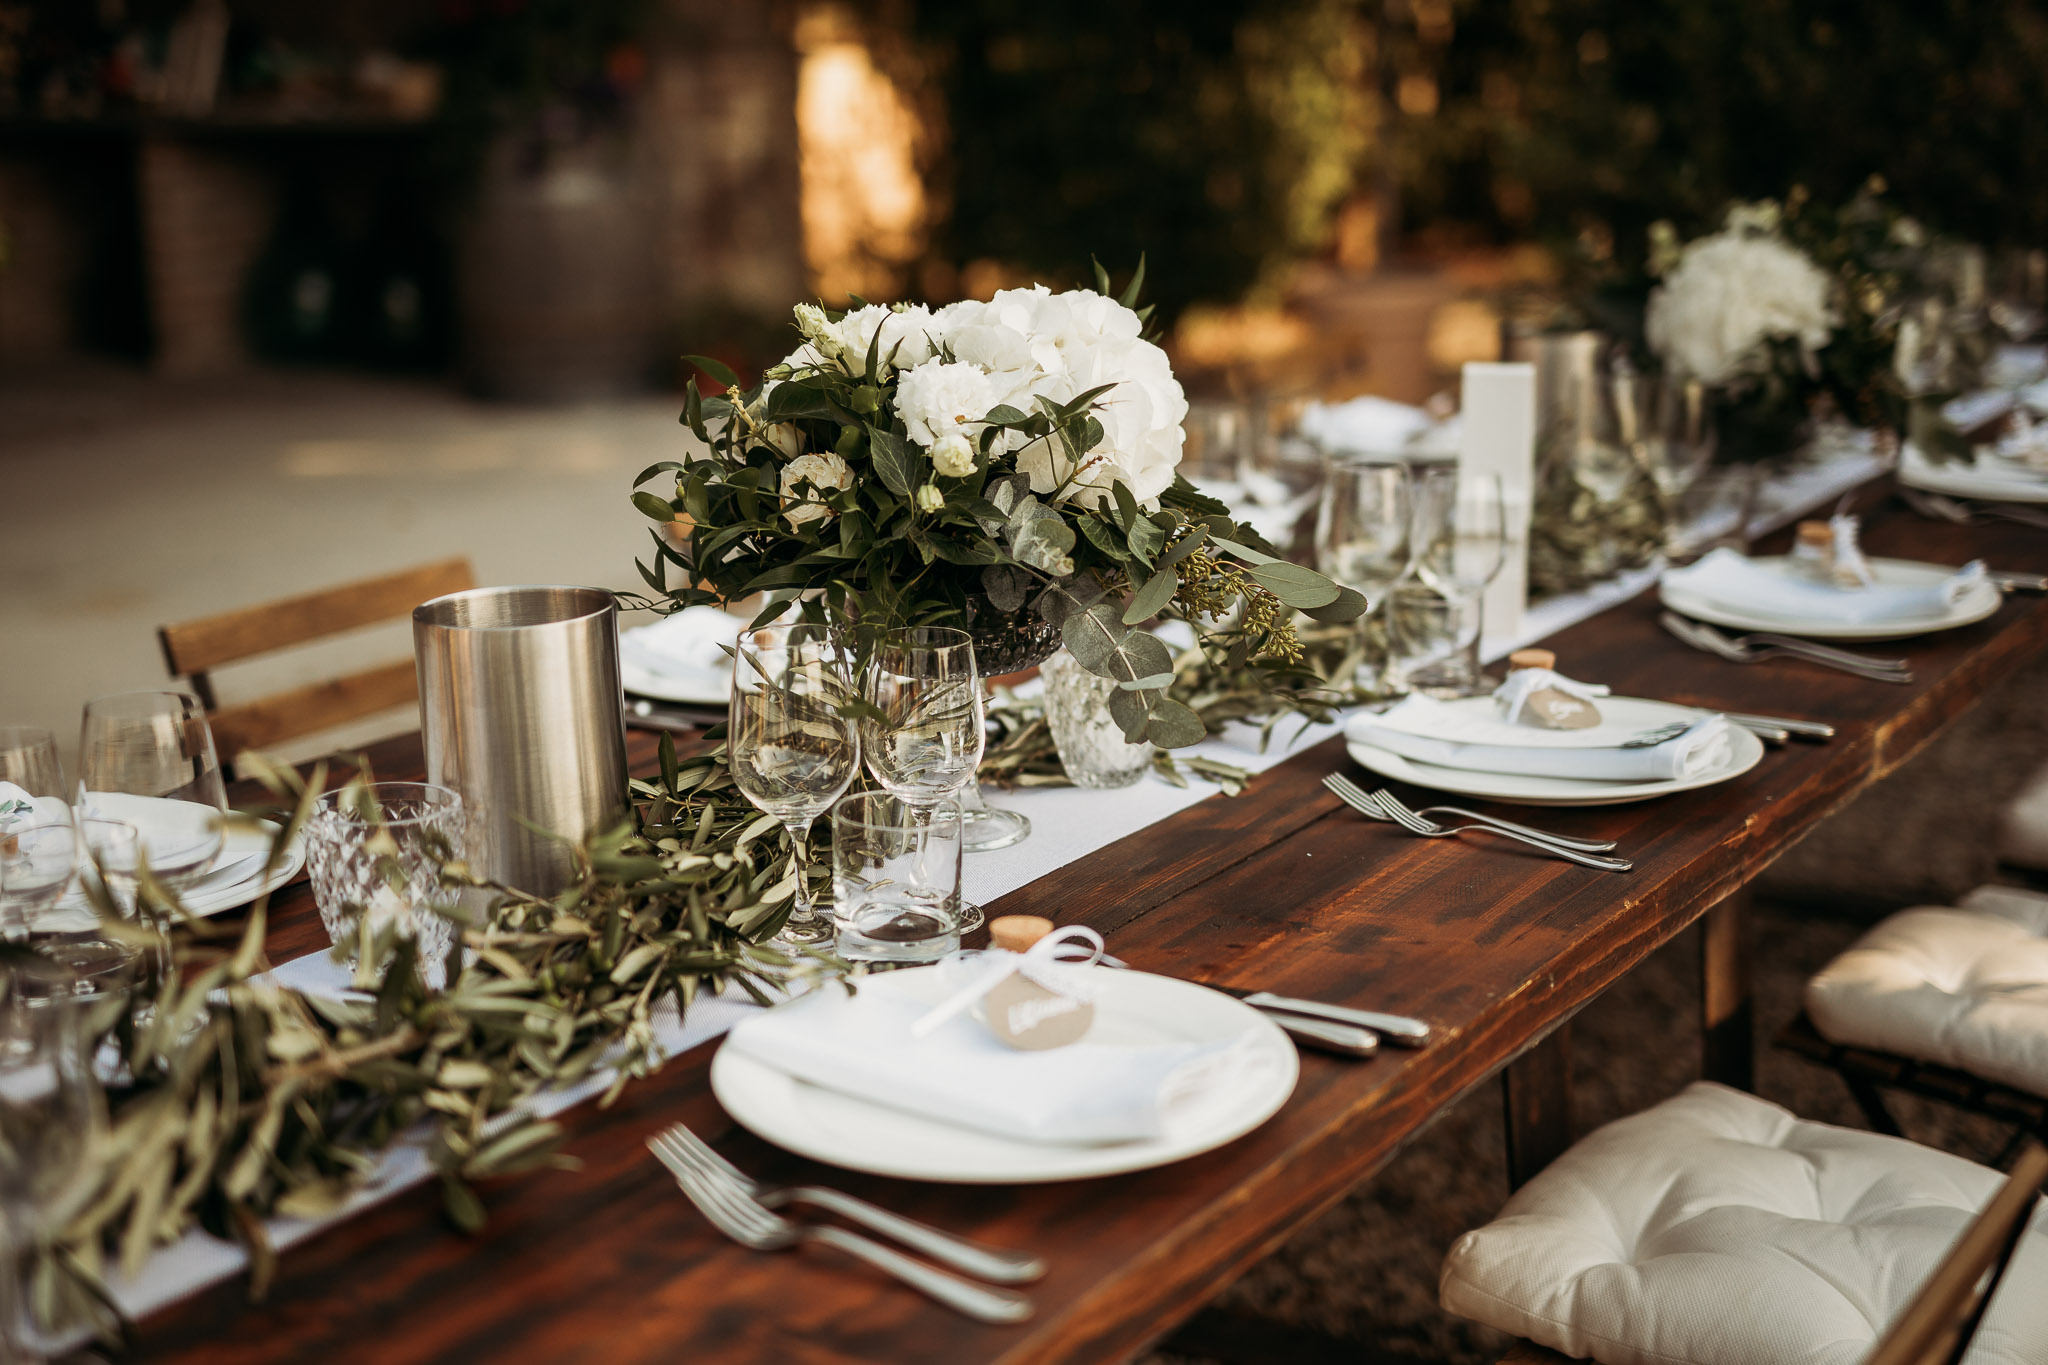 Table setting decor with white flowers, olive and eucapytus leaves at at La Villa Hotel, Mombaruzzo